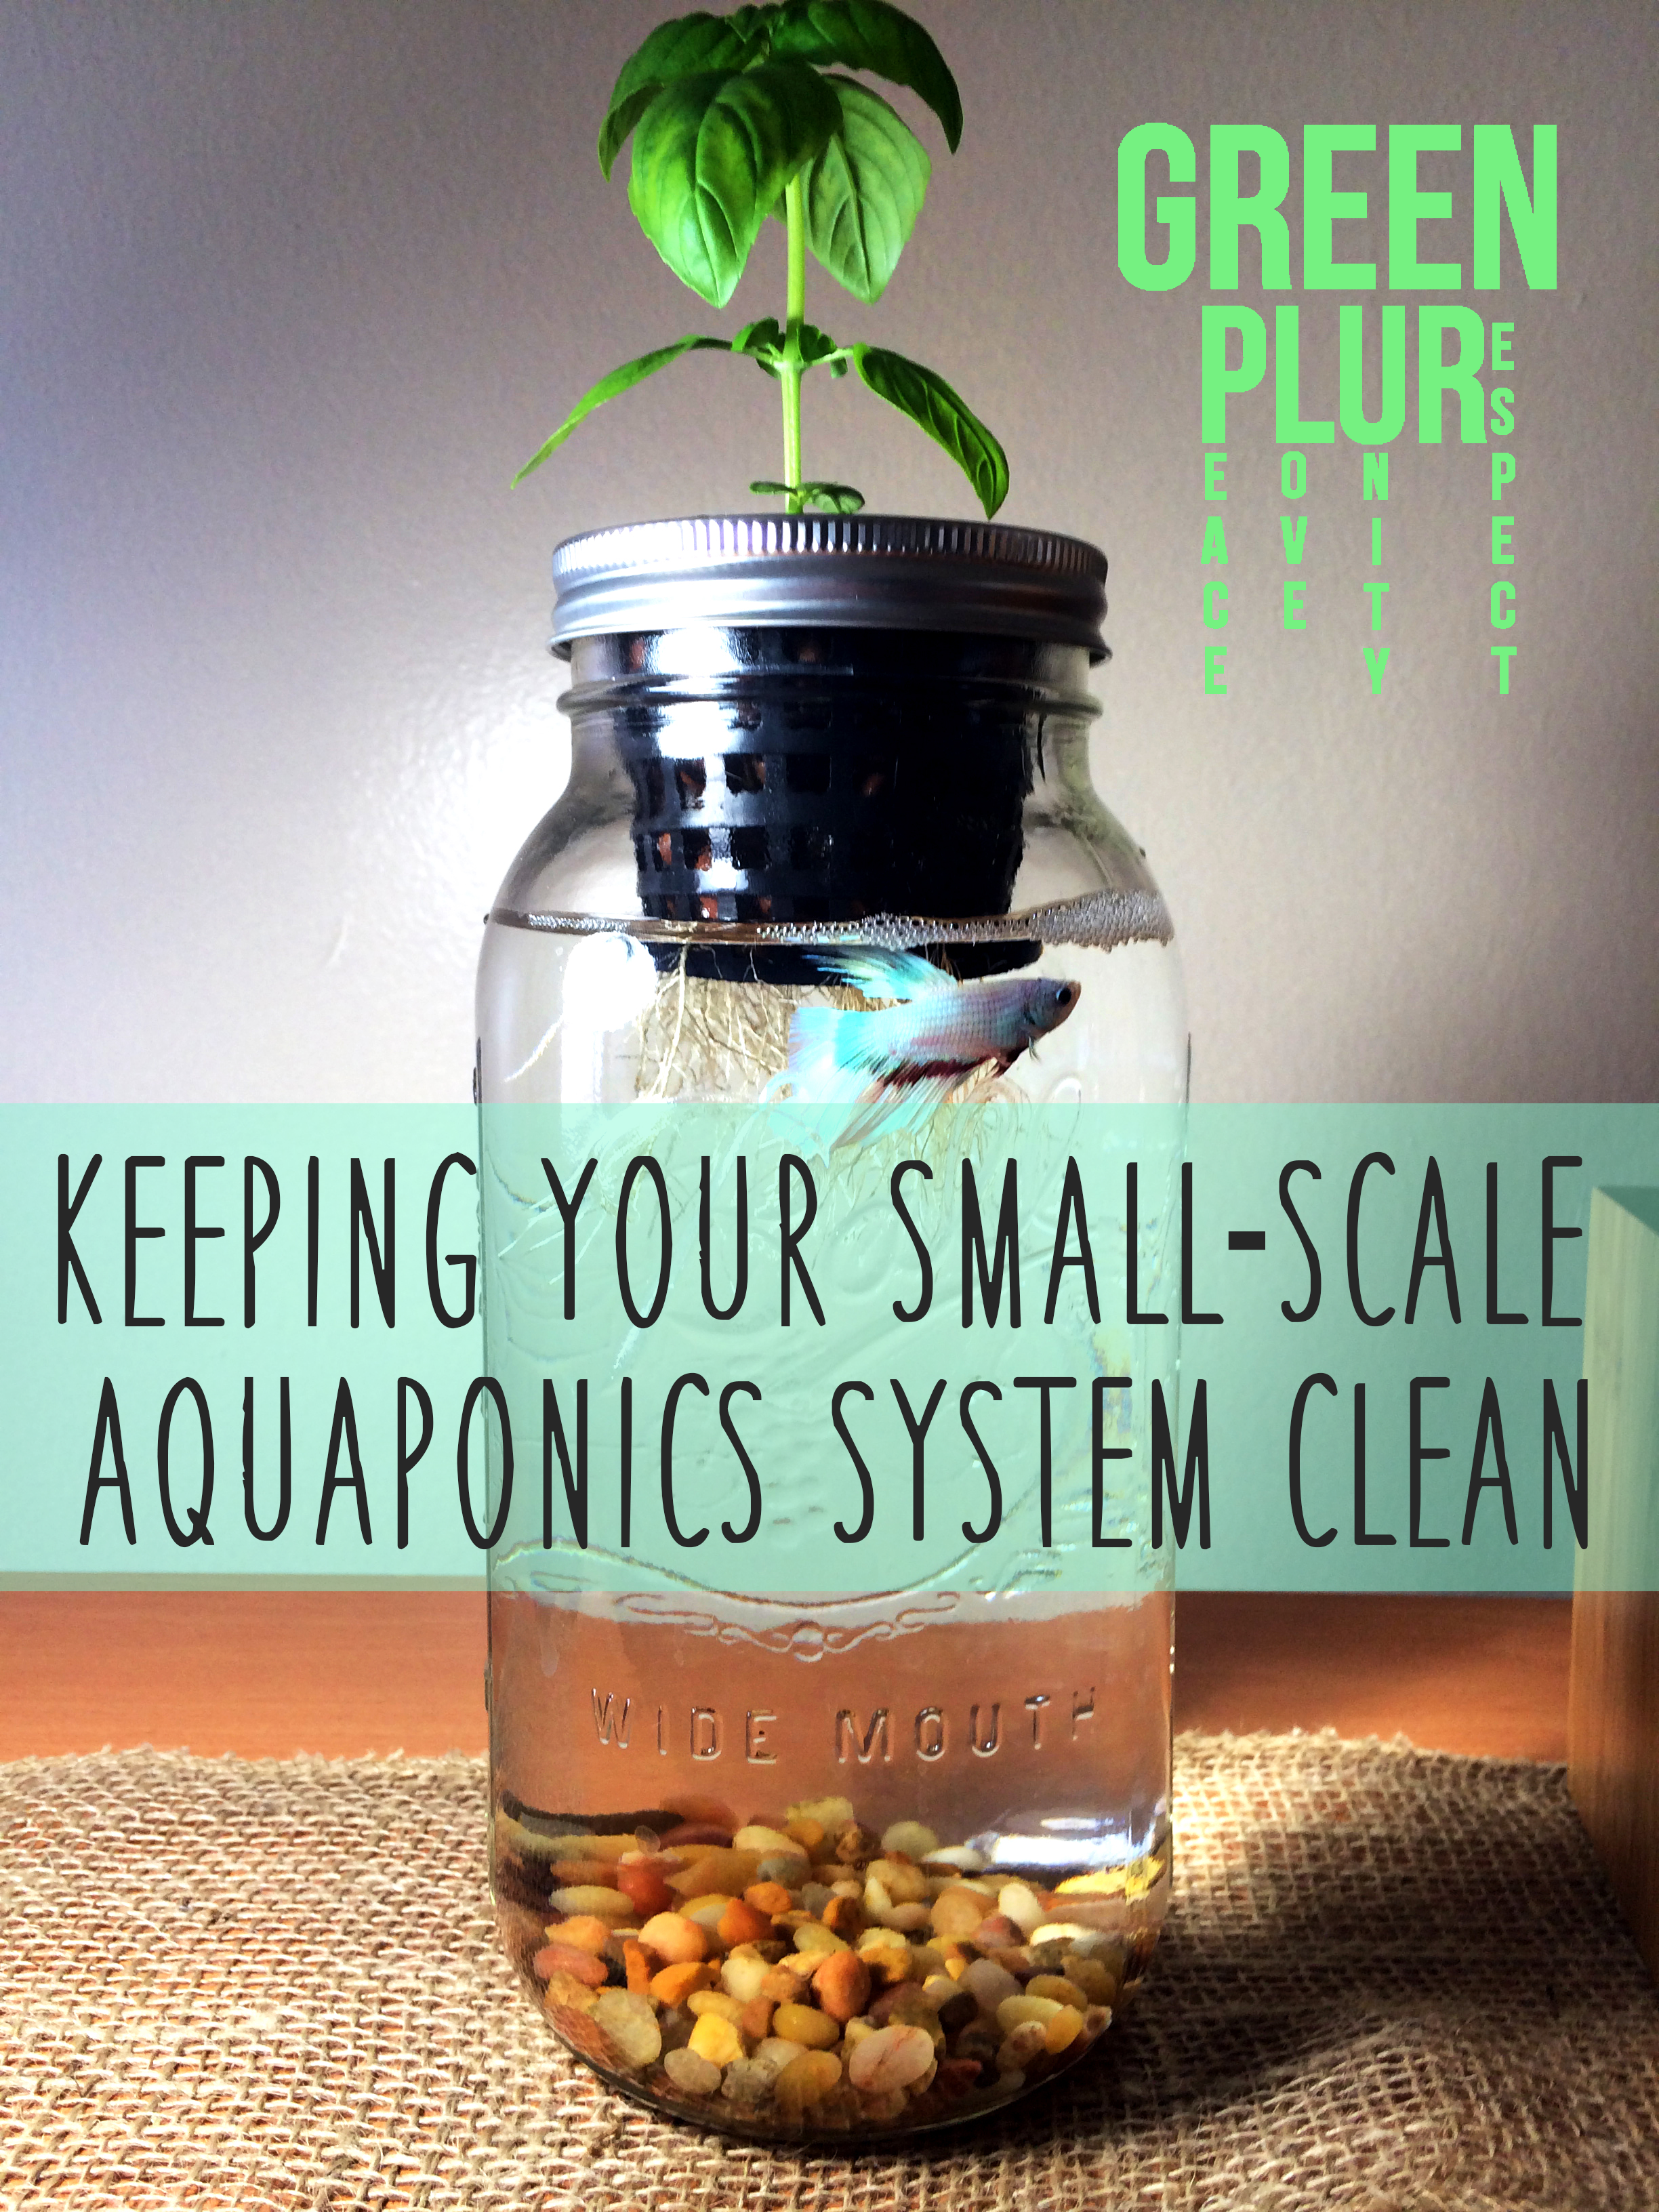 Self Cleaning Fish Tank Garden Keeping A Small Scale Aquaponics System Clean Aquaponics System